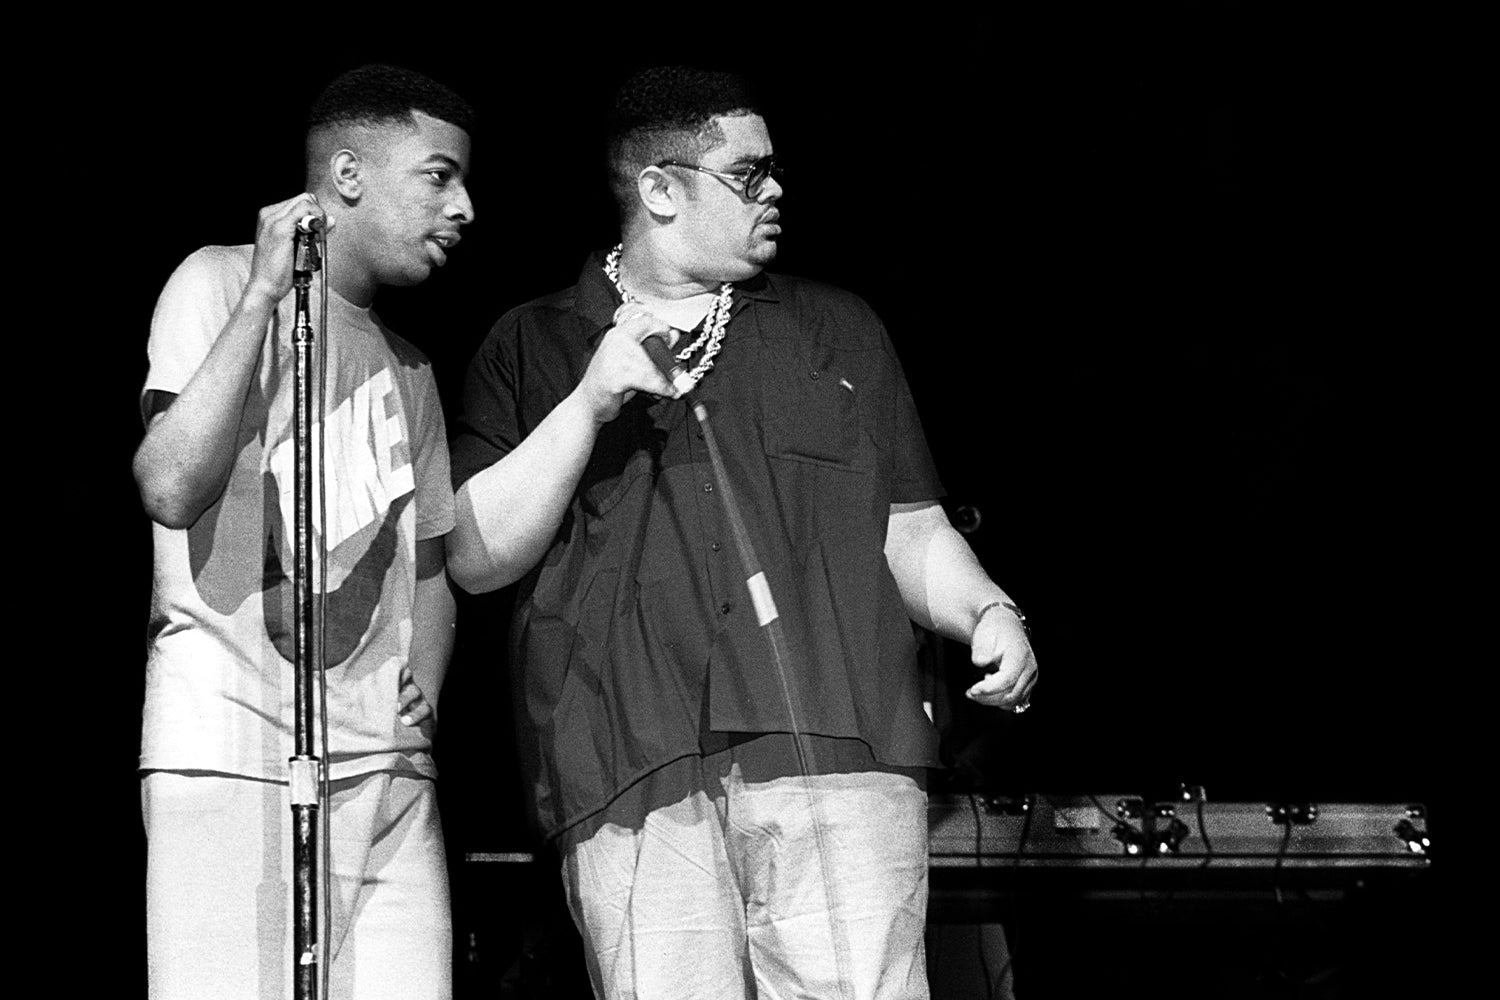 Trouble T-Roy of Heavy D. And The Boyz and Heavy D. performs at the Holiday Star Theater in Merrillville, Indiana in 1988. (Photo By Raymond Boyd/Michael Ochs Archives/Getty Images)